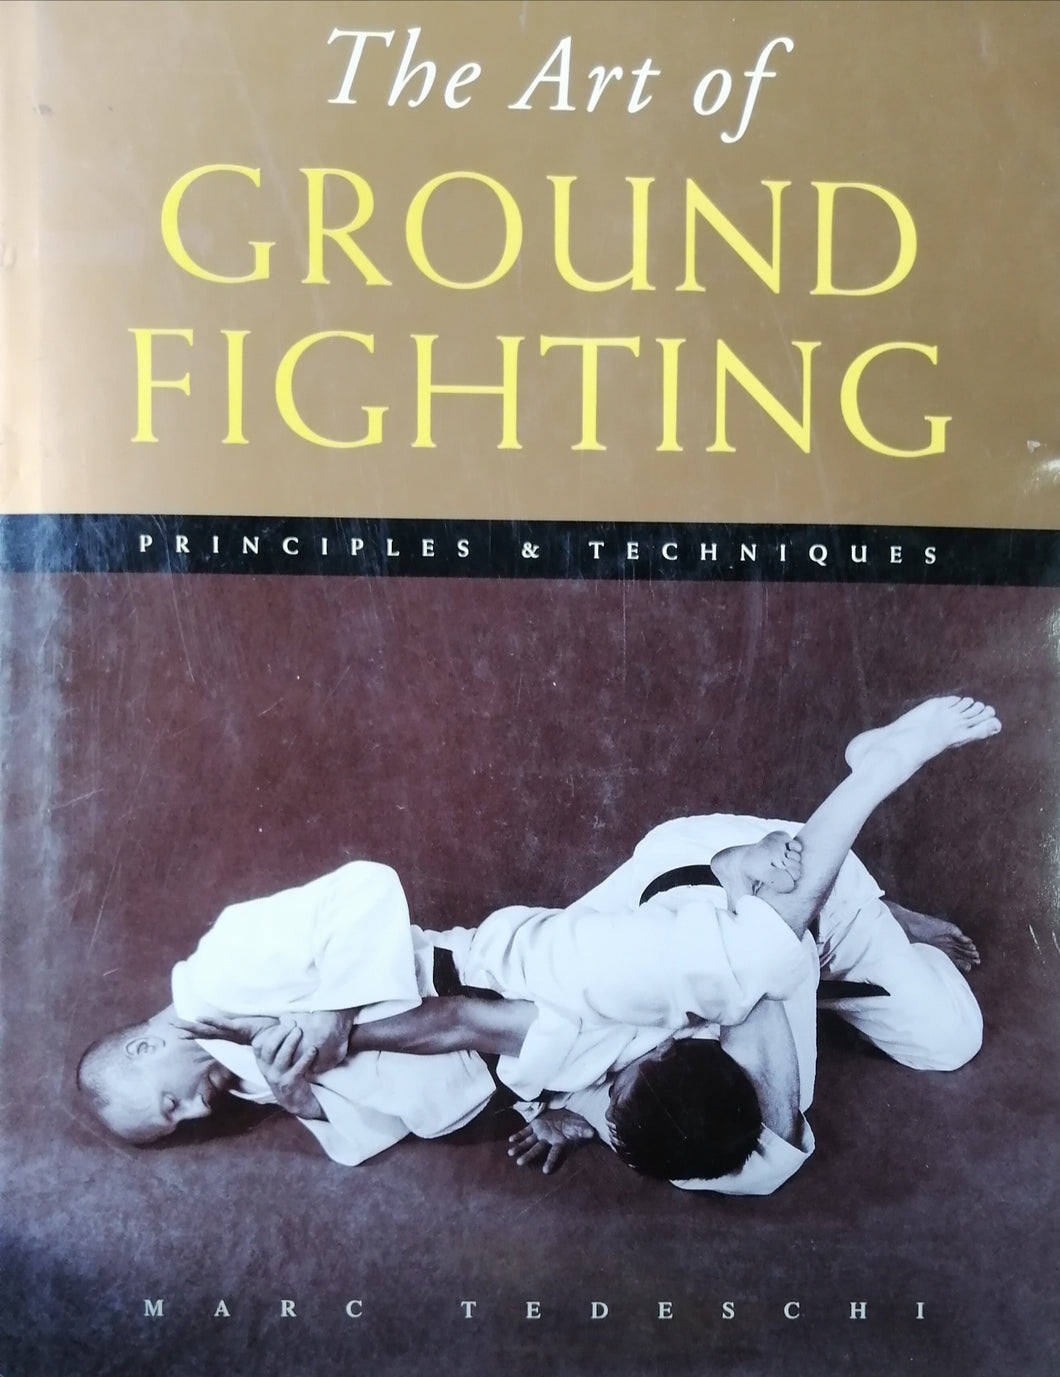 The art of GROUND FIGHTING by Marc Teseschi